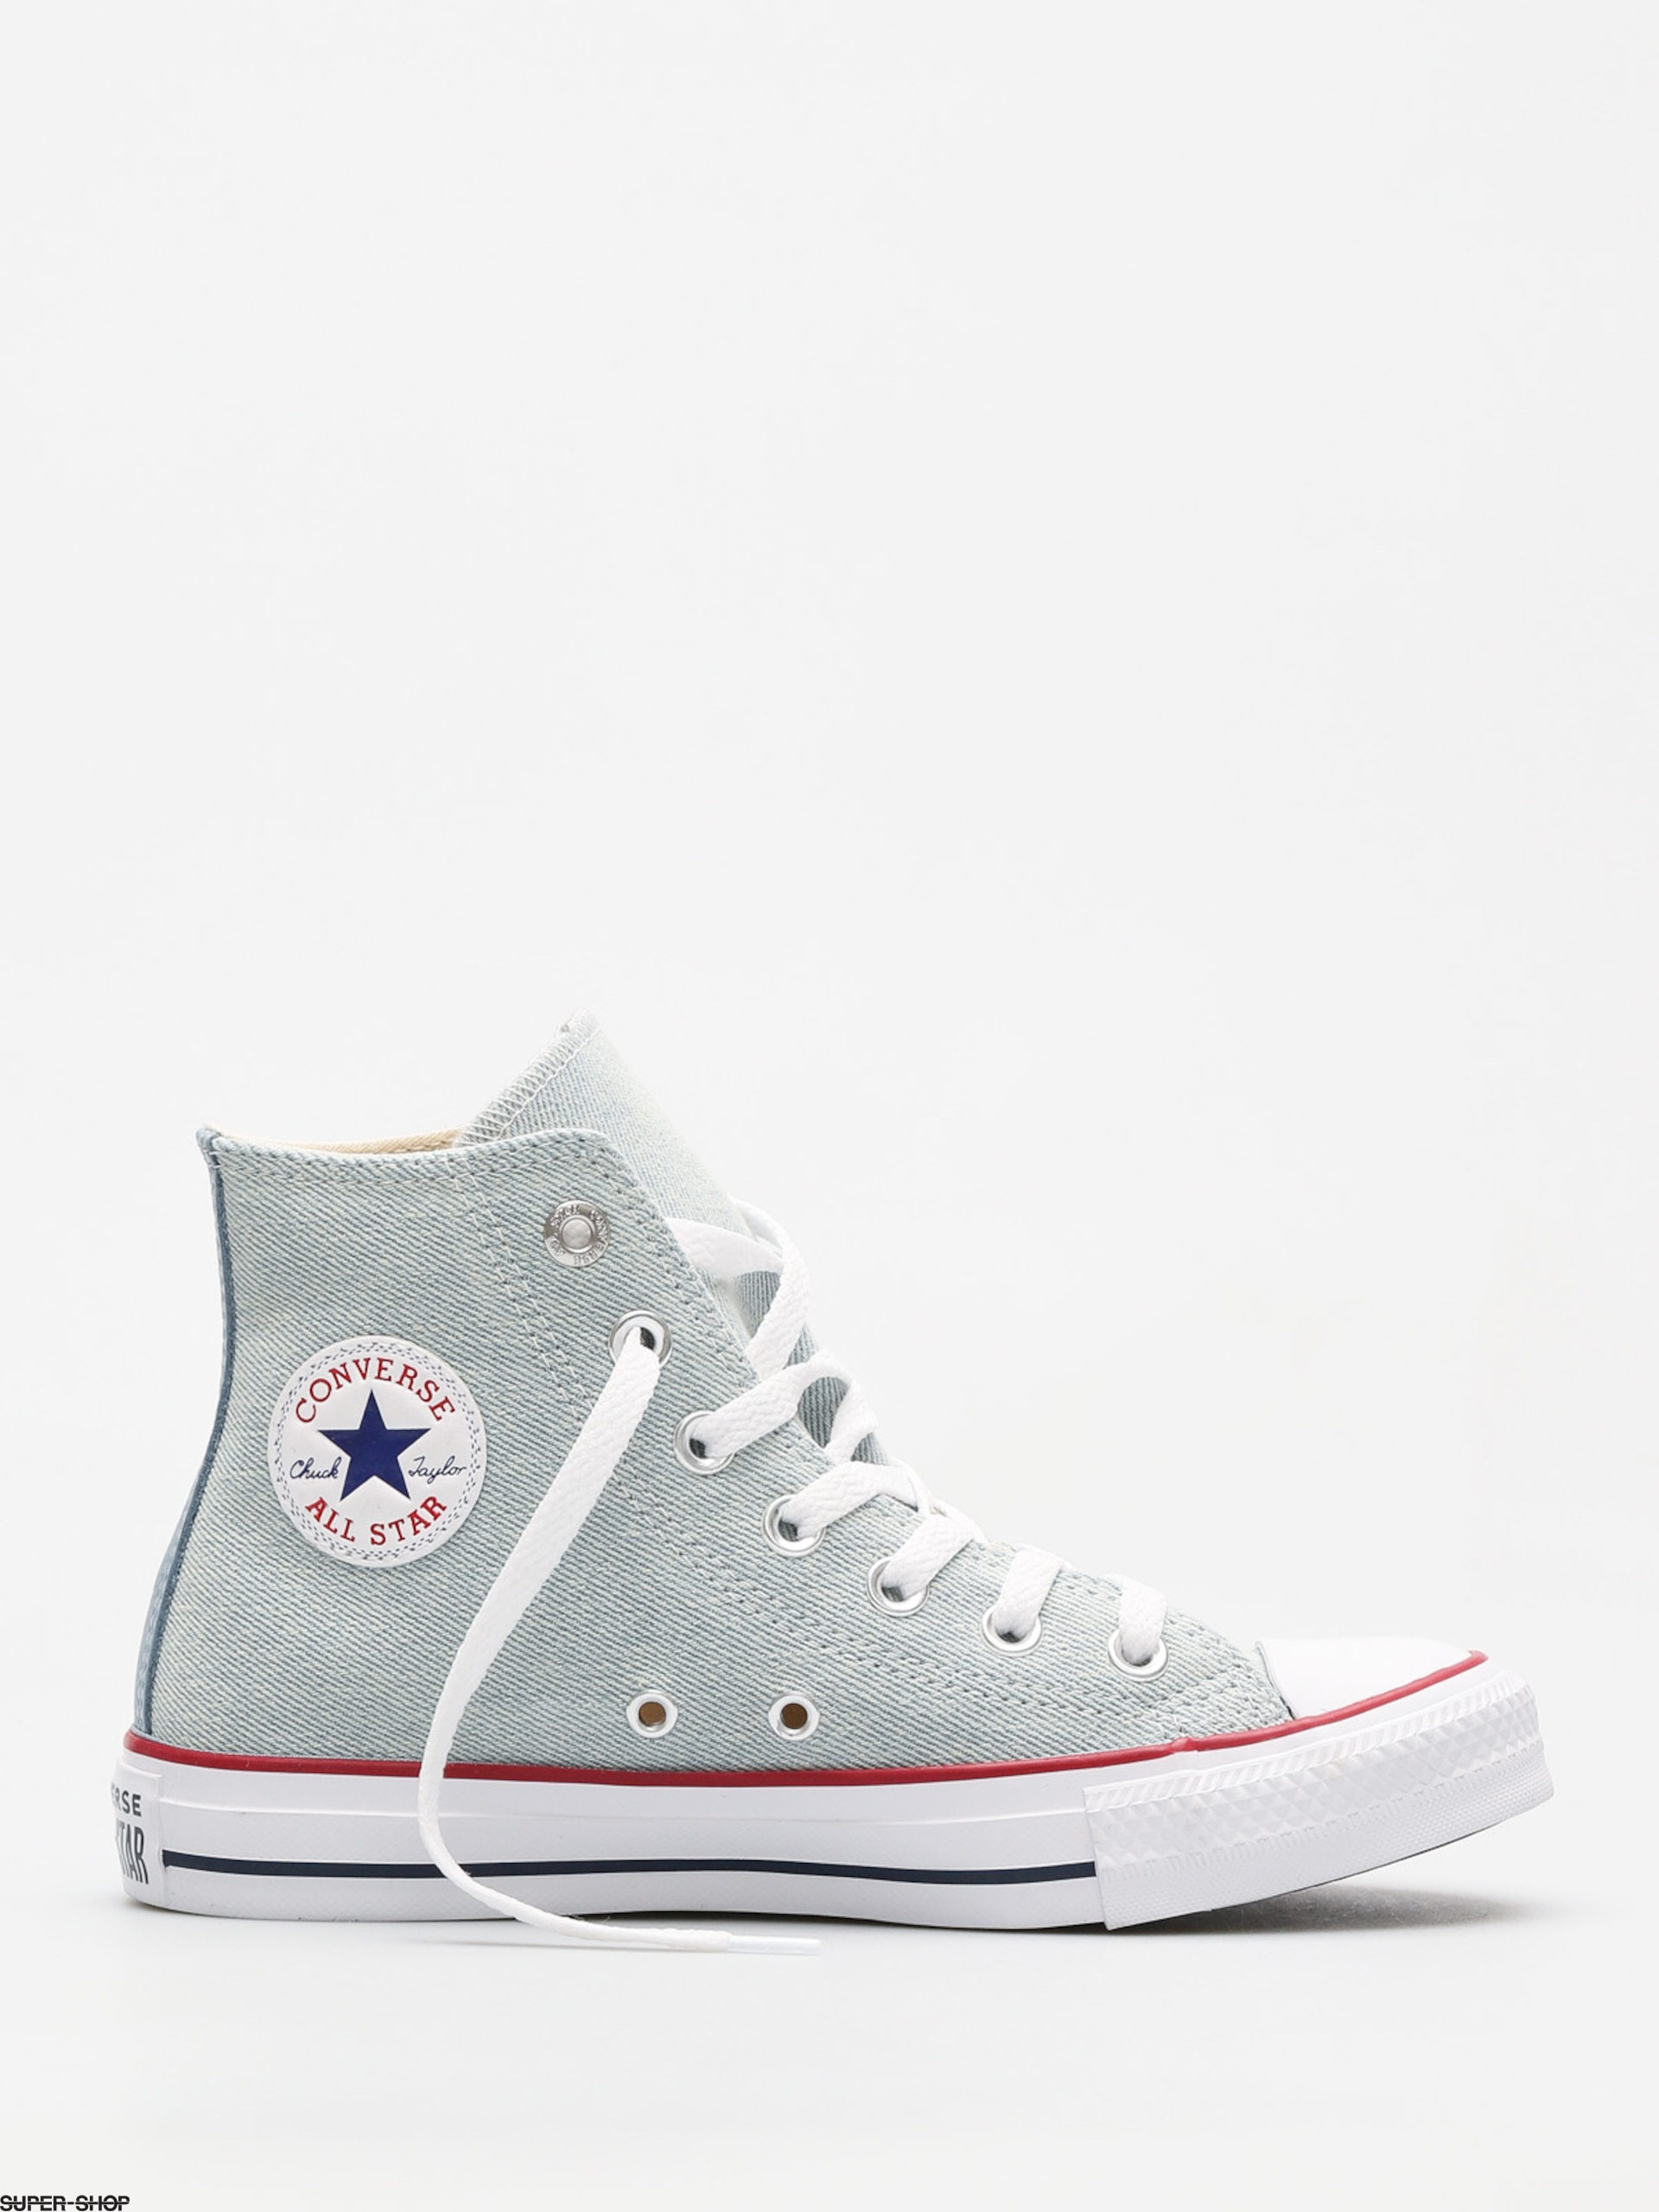 f99038dcc073e3 Converse Chucks Chuck Taylor All Star Hi (light blue white brown)